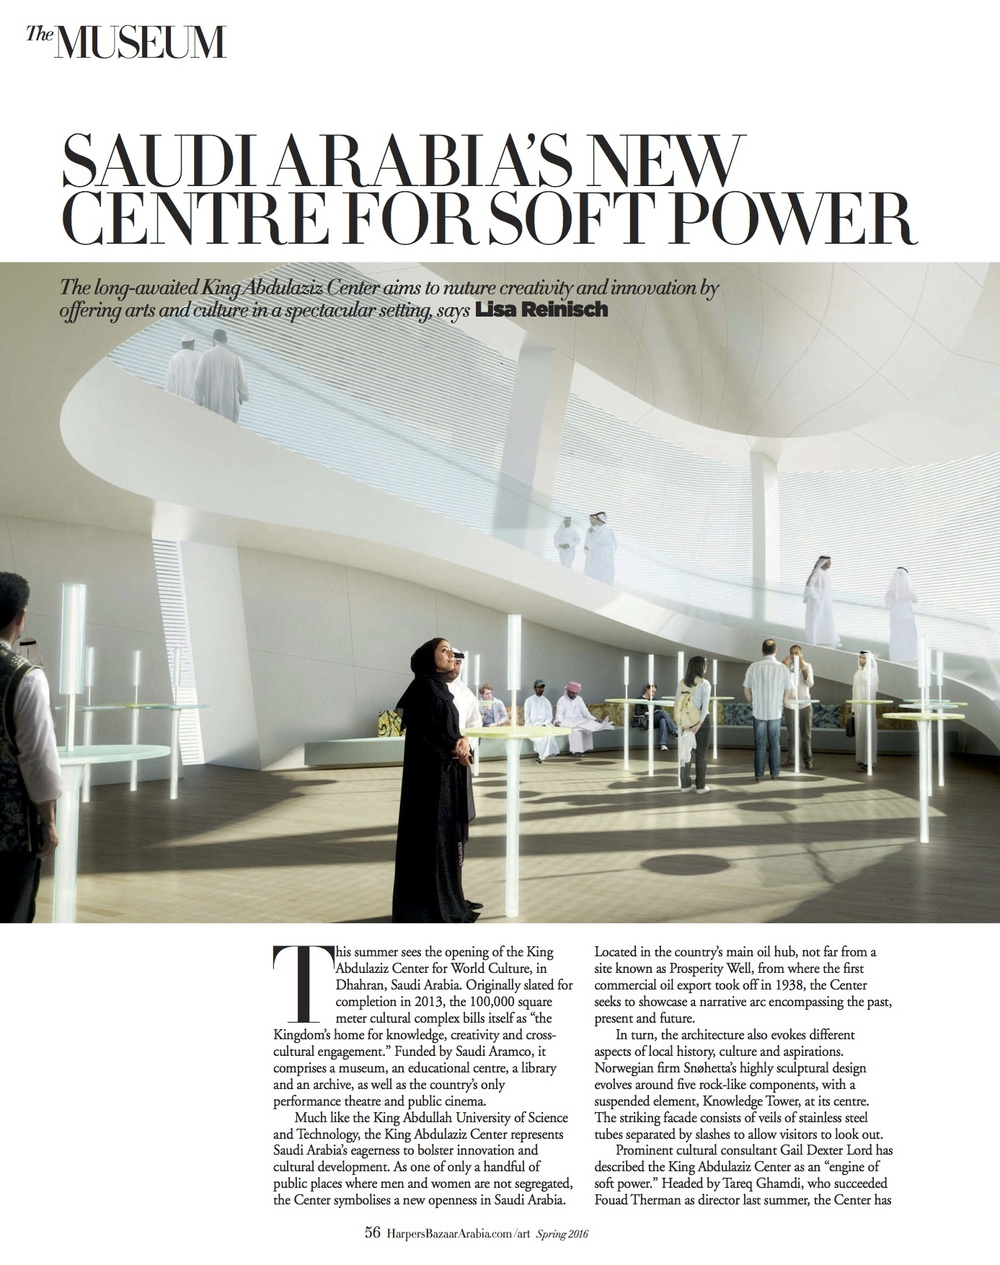 First assignment for  Harper's Bazaar Art: a  preview of the long-awaited King Abdulaziz Center for World Culture in Dhahran, Saudi Arabia, designed by Norwegian architects Snøhetta,